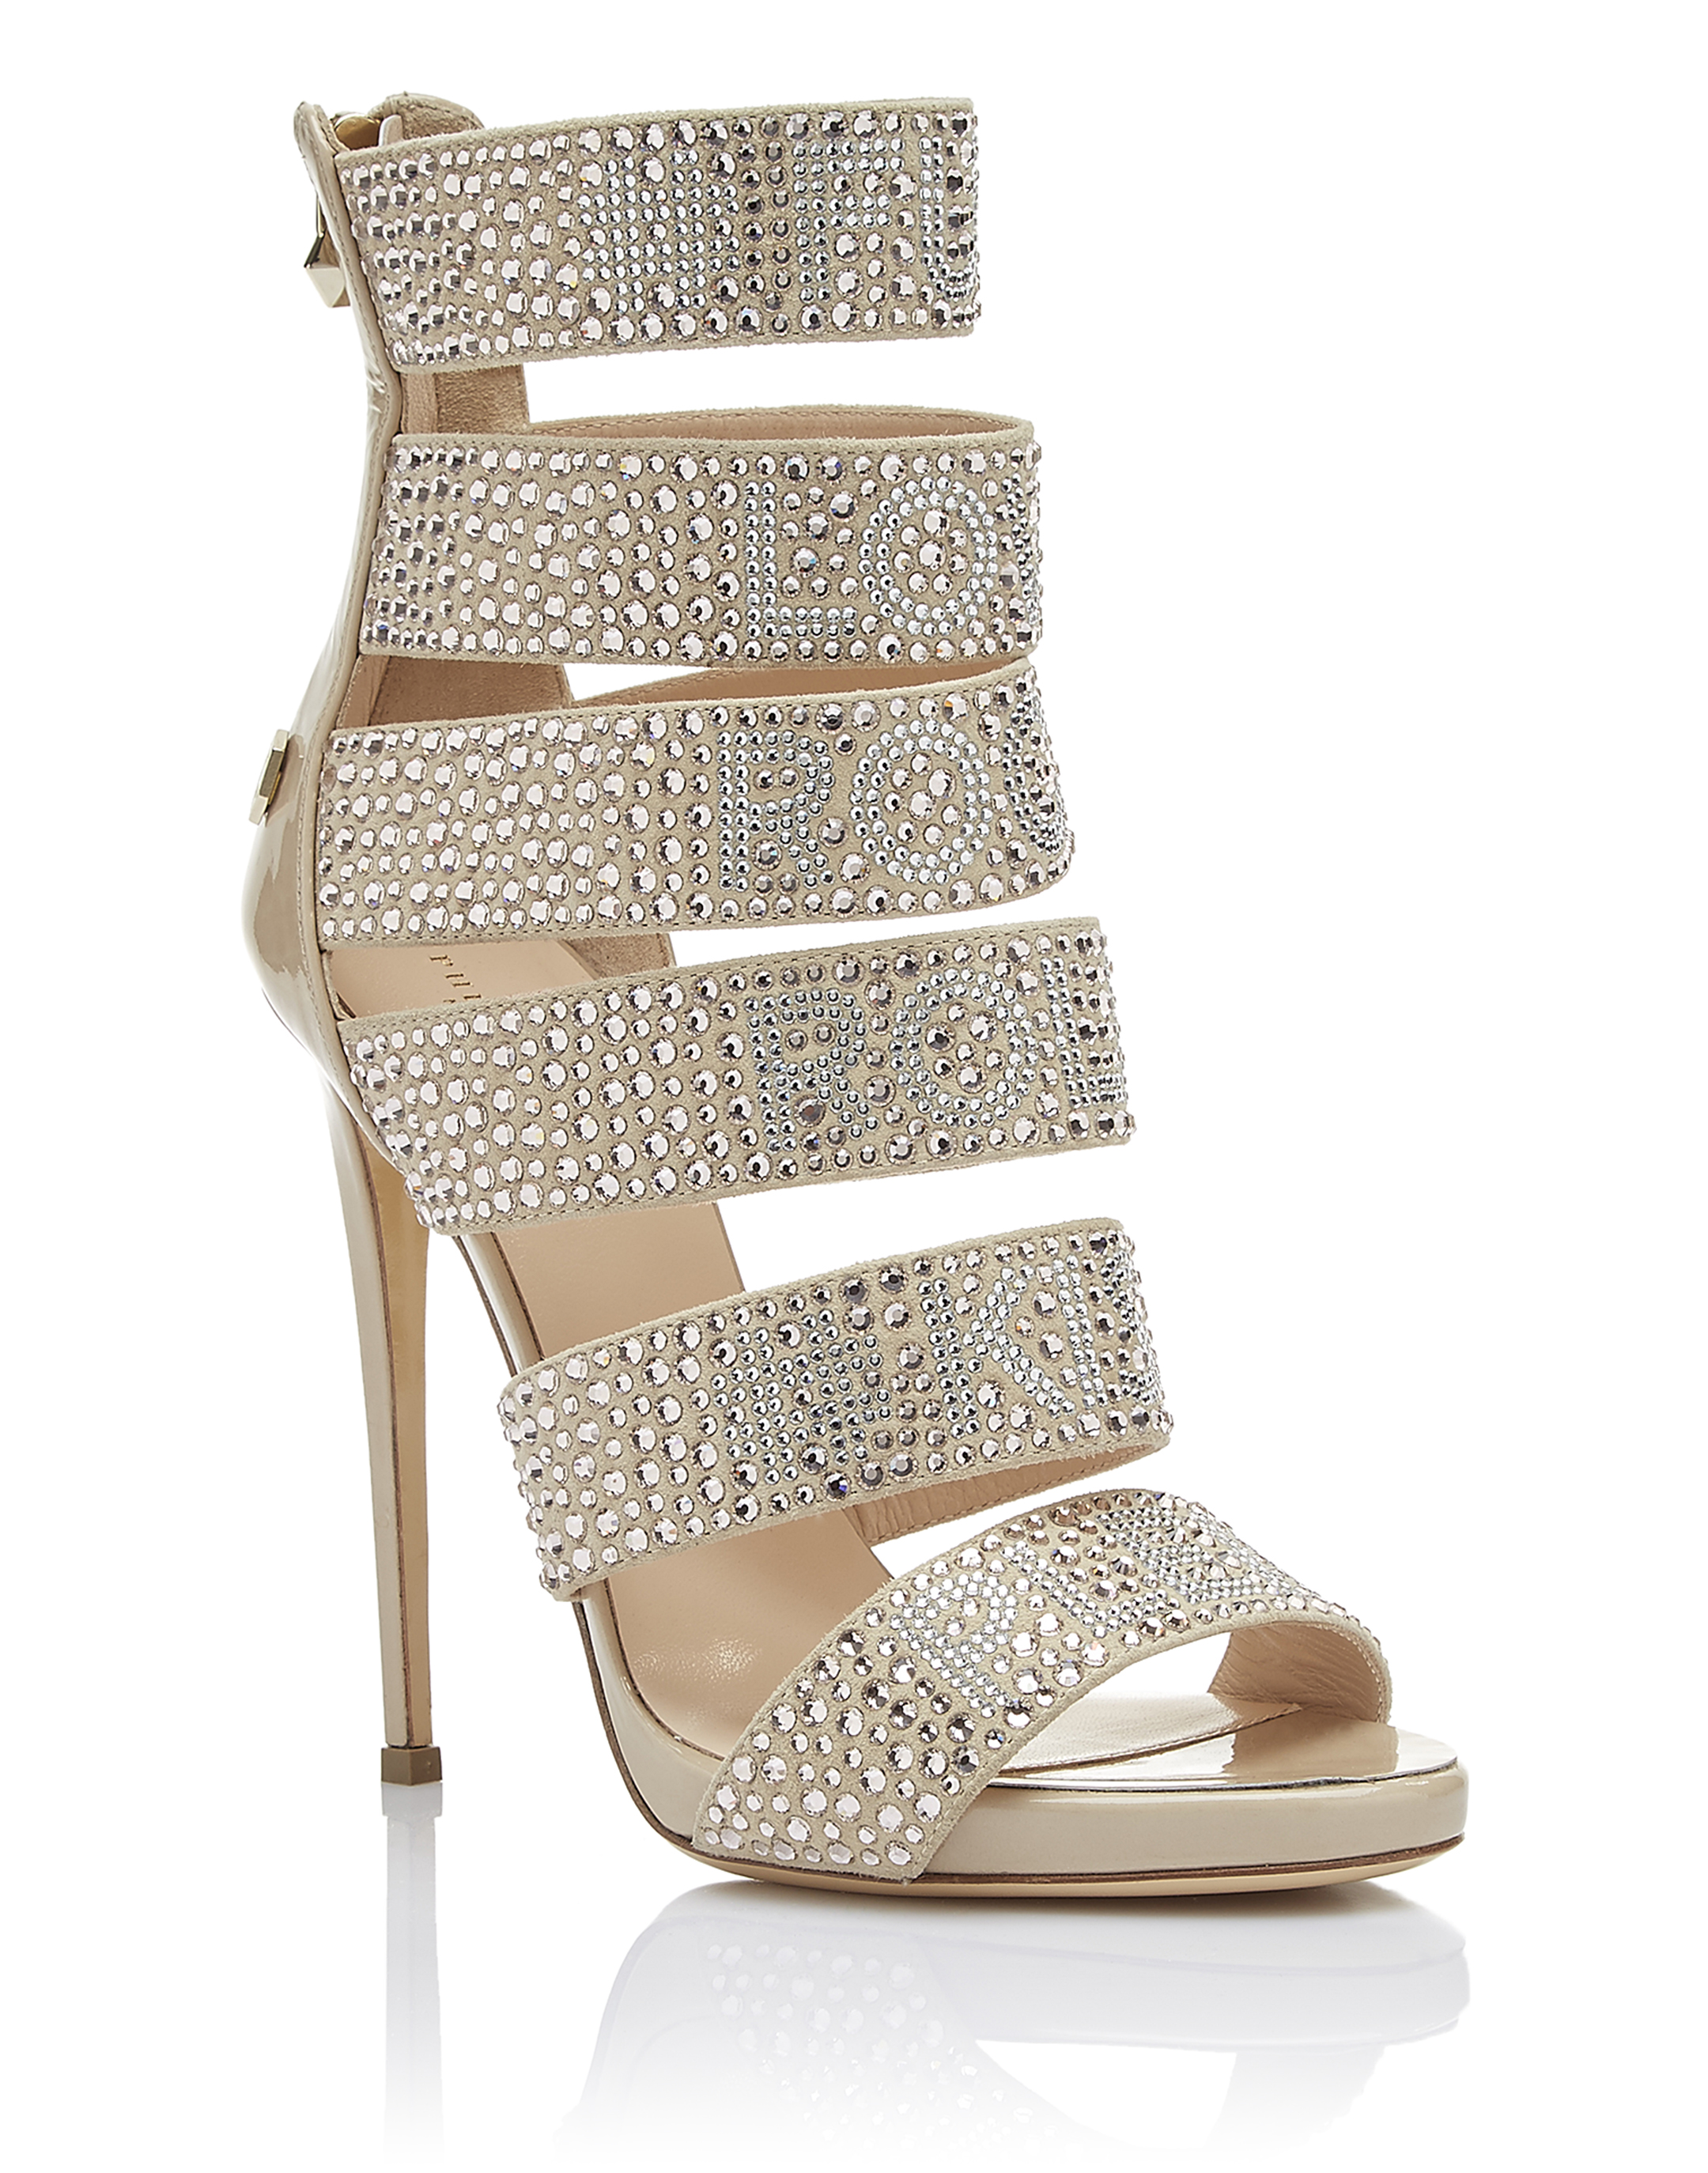 Philipp PleinSandals High Heels